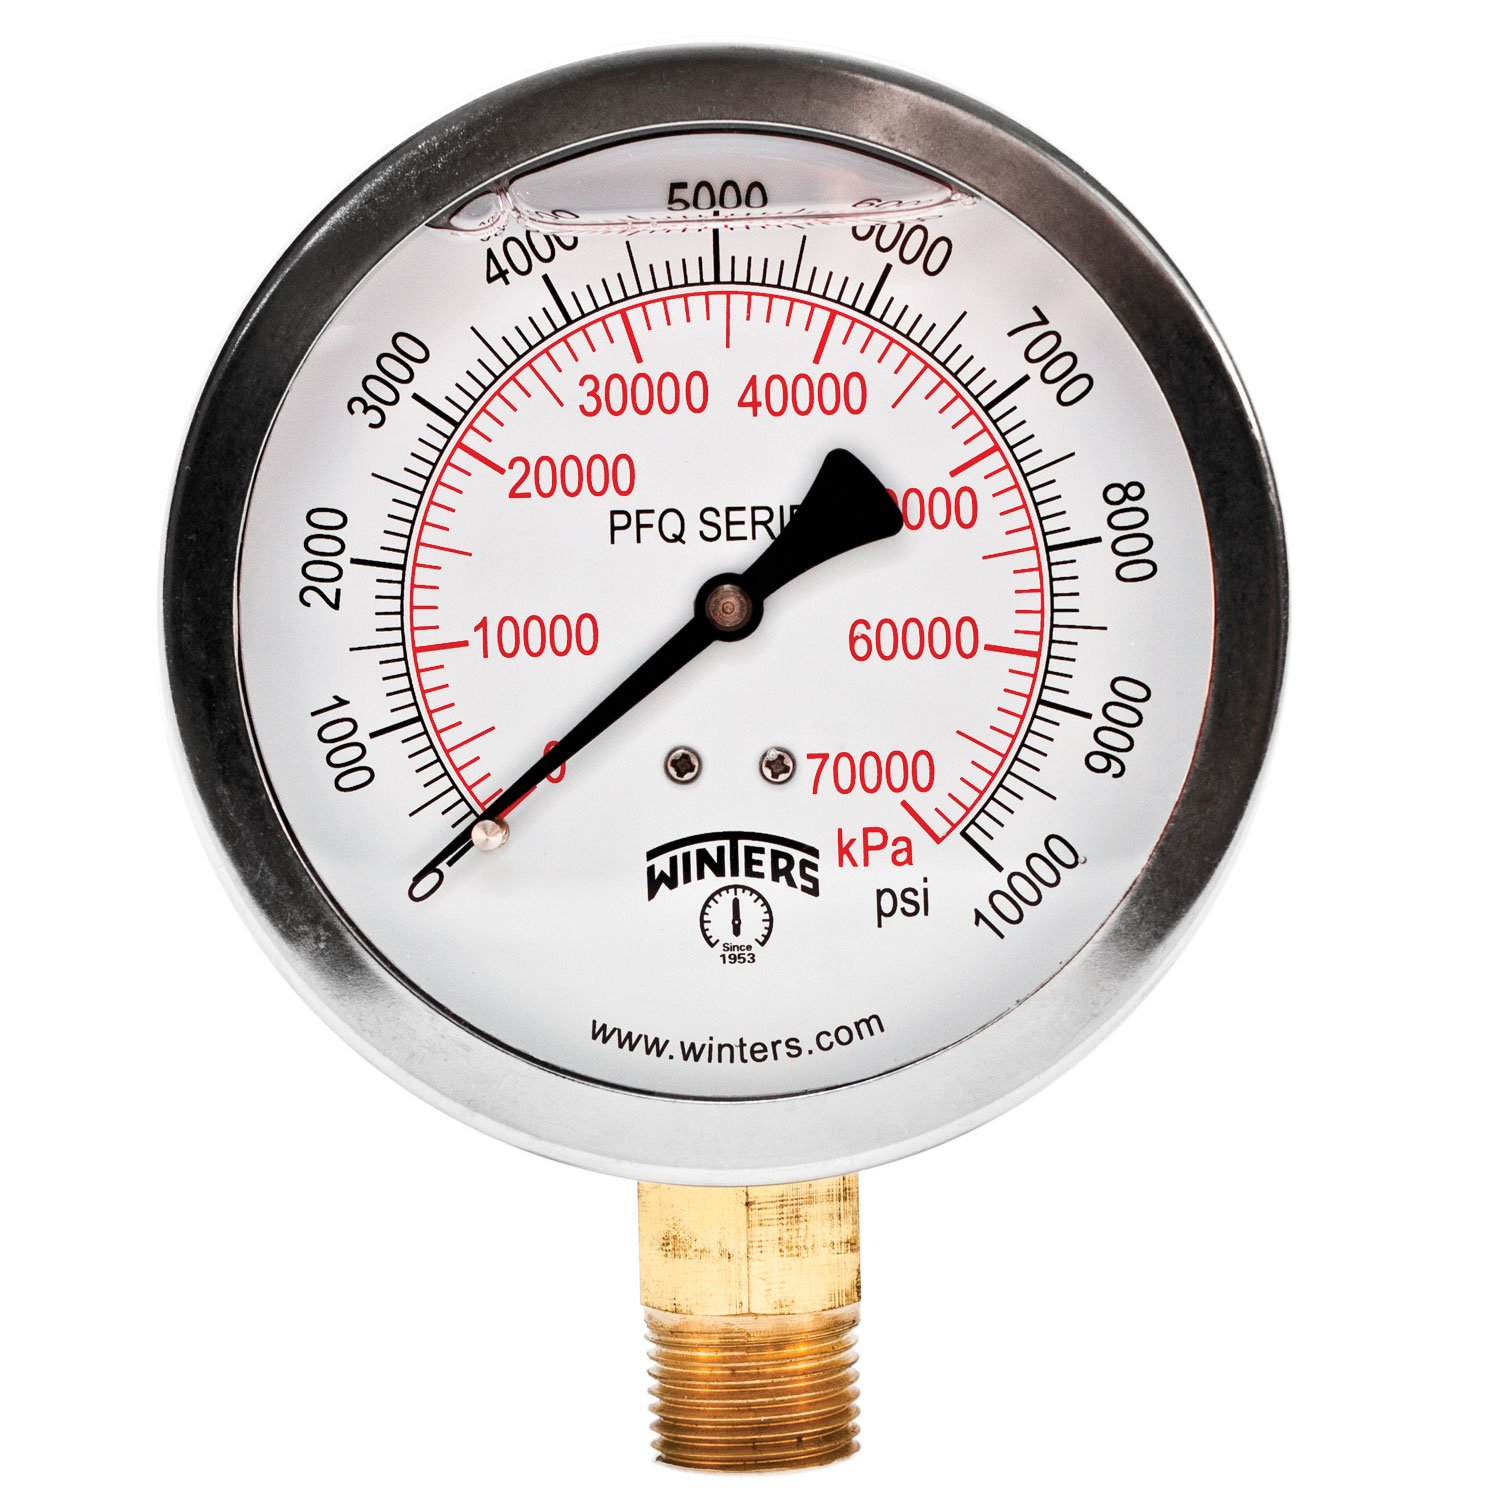 """Winters PFQ Series Stainless Steel 304 Dual Scale Liquid Filled Pressure Gauge with Brass Internals, 0-10000 psi/kpa,4"""" Dial Display, +/- 1.5% Accuracy, 1/2"""" NPT Bottom Mount"""